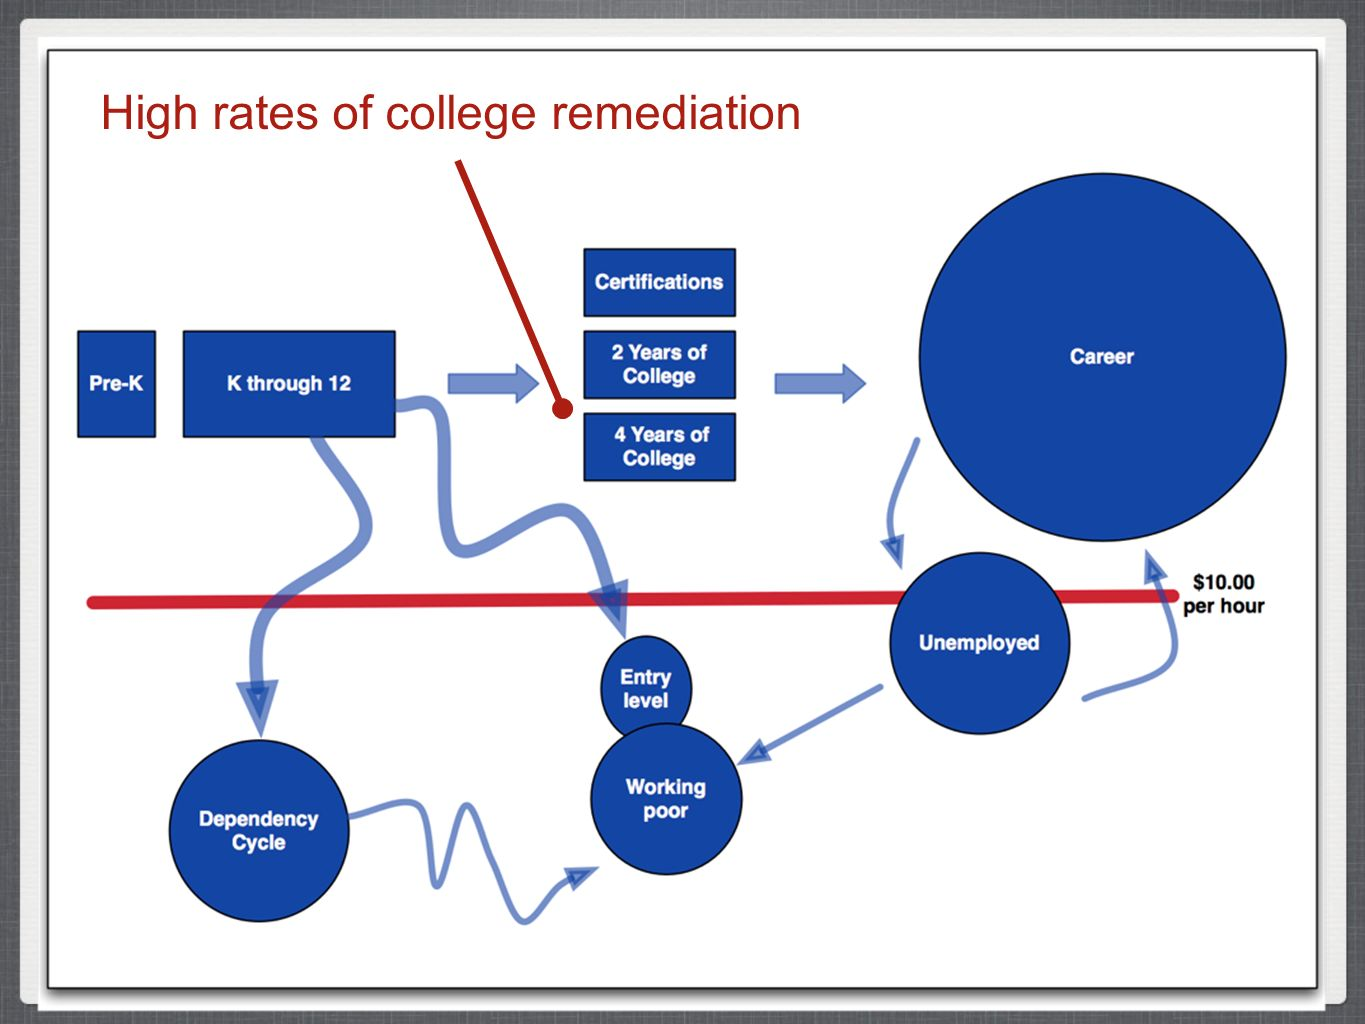 High rates of college remediation